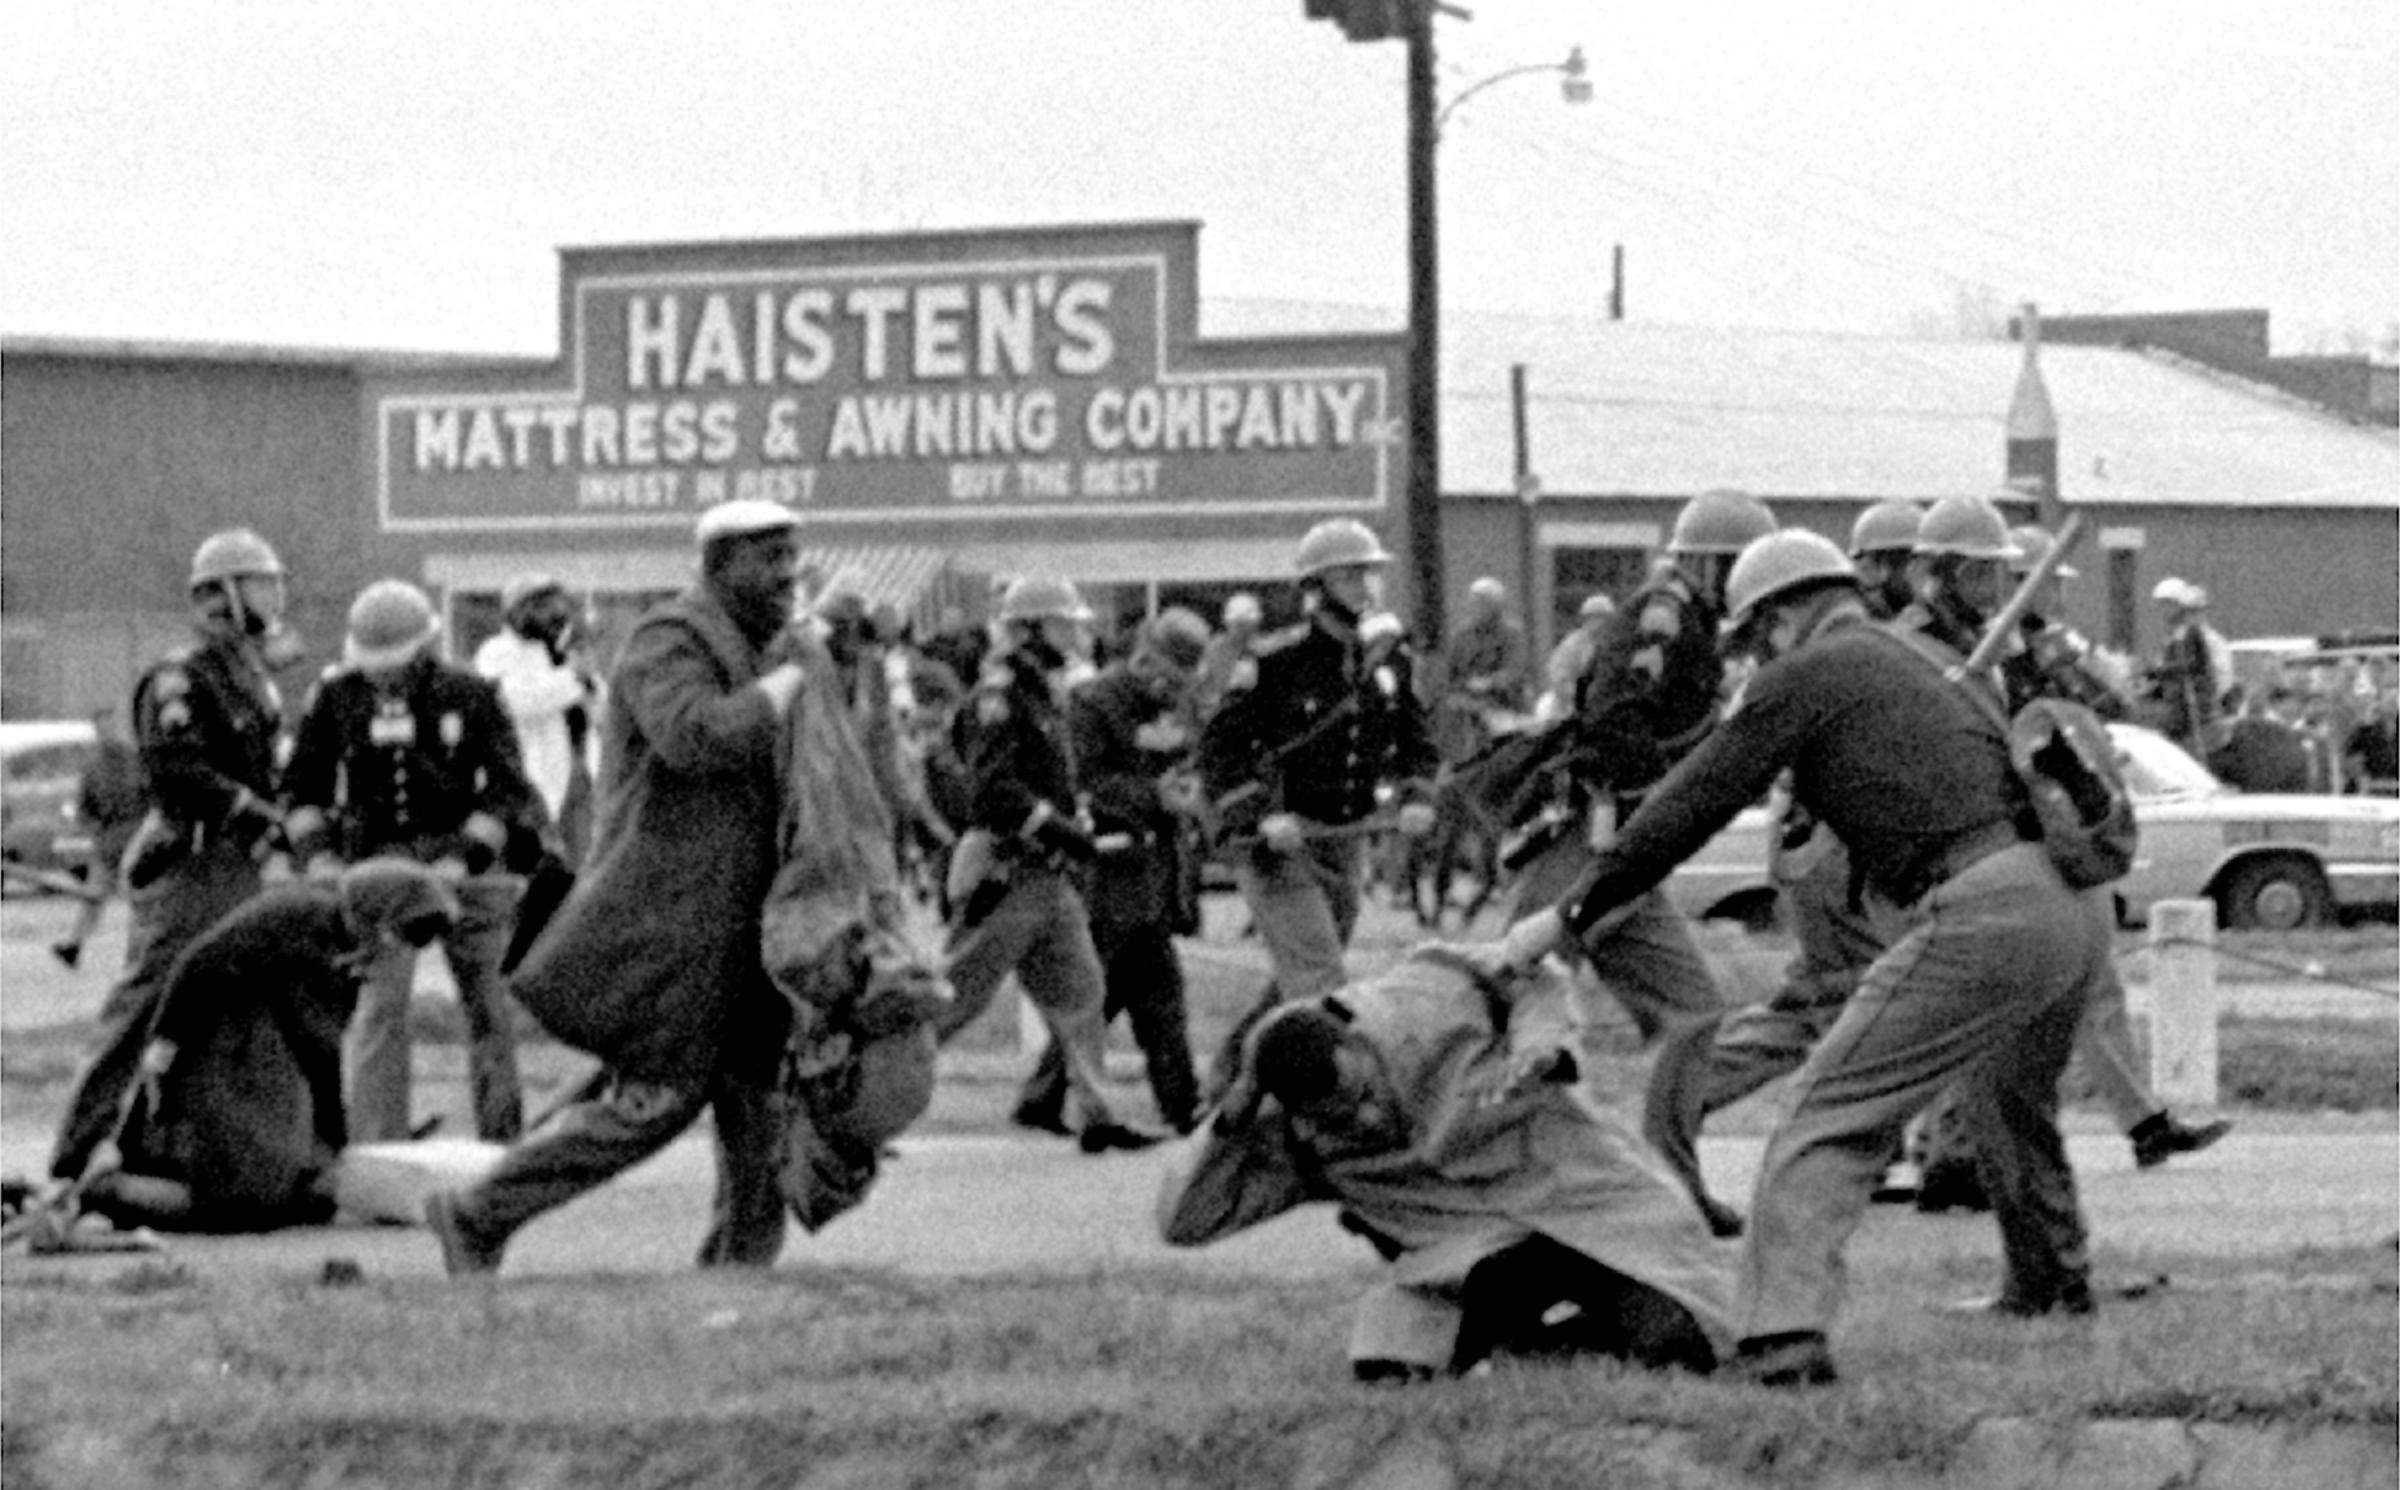 50 Years After March On Washington John Lewis Still